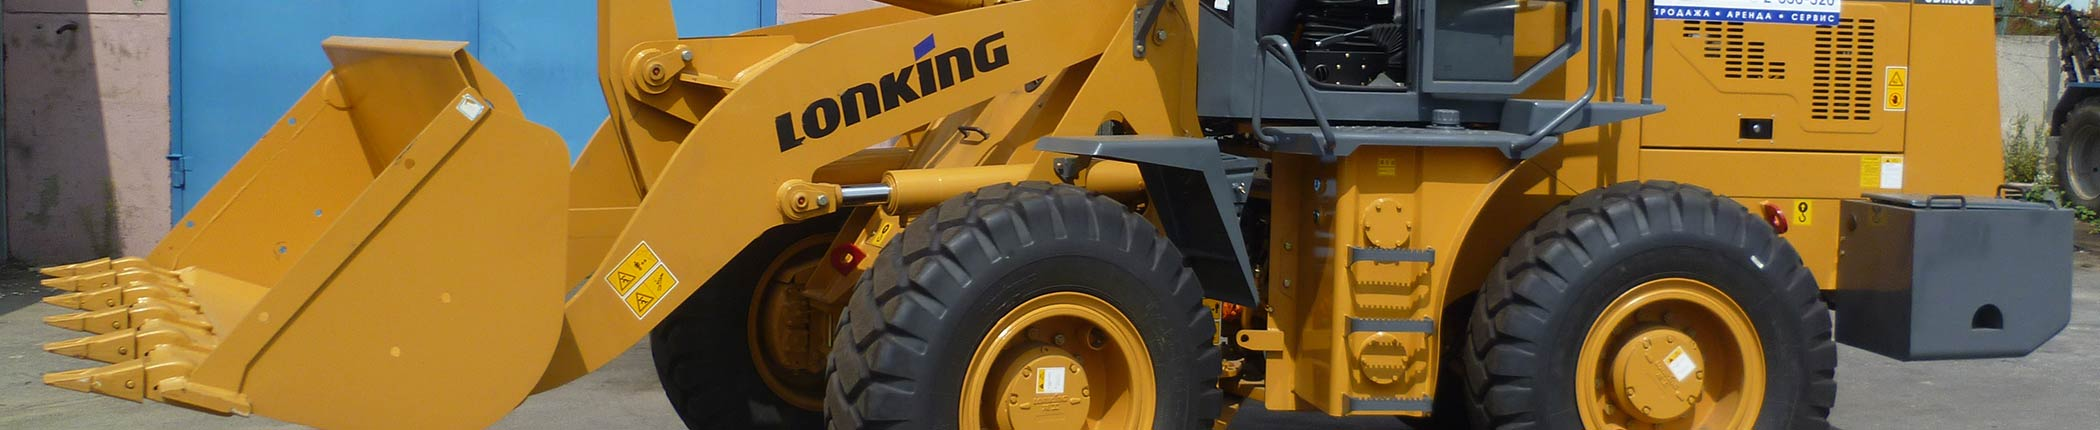 LONKING Wheel Loader، Hydraulic Excavator، Road Roller and Fork lifter